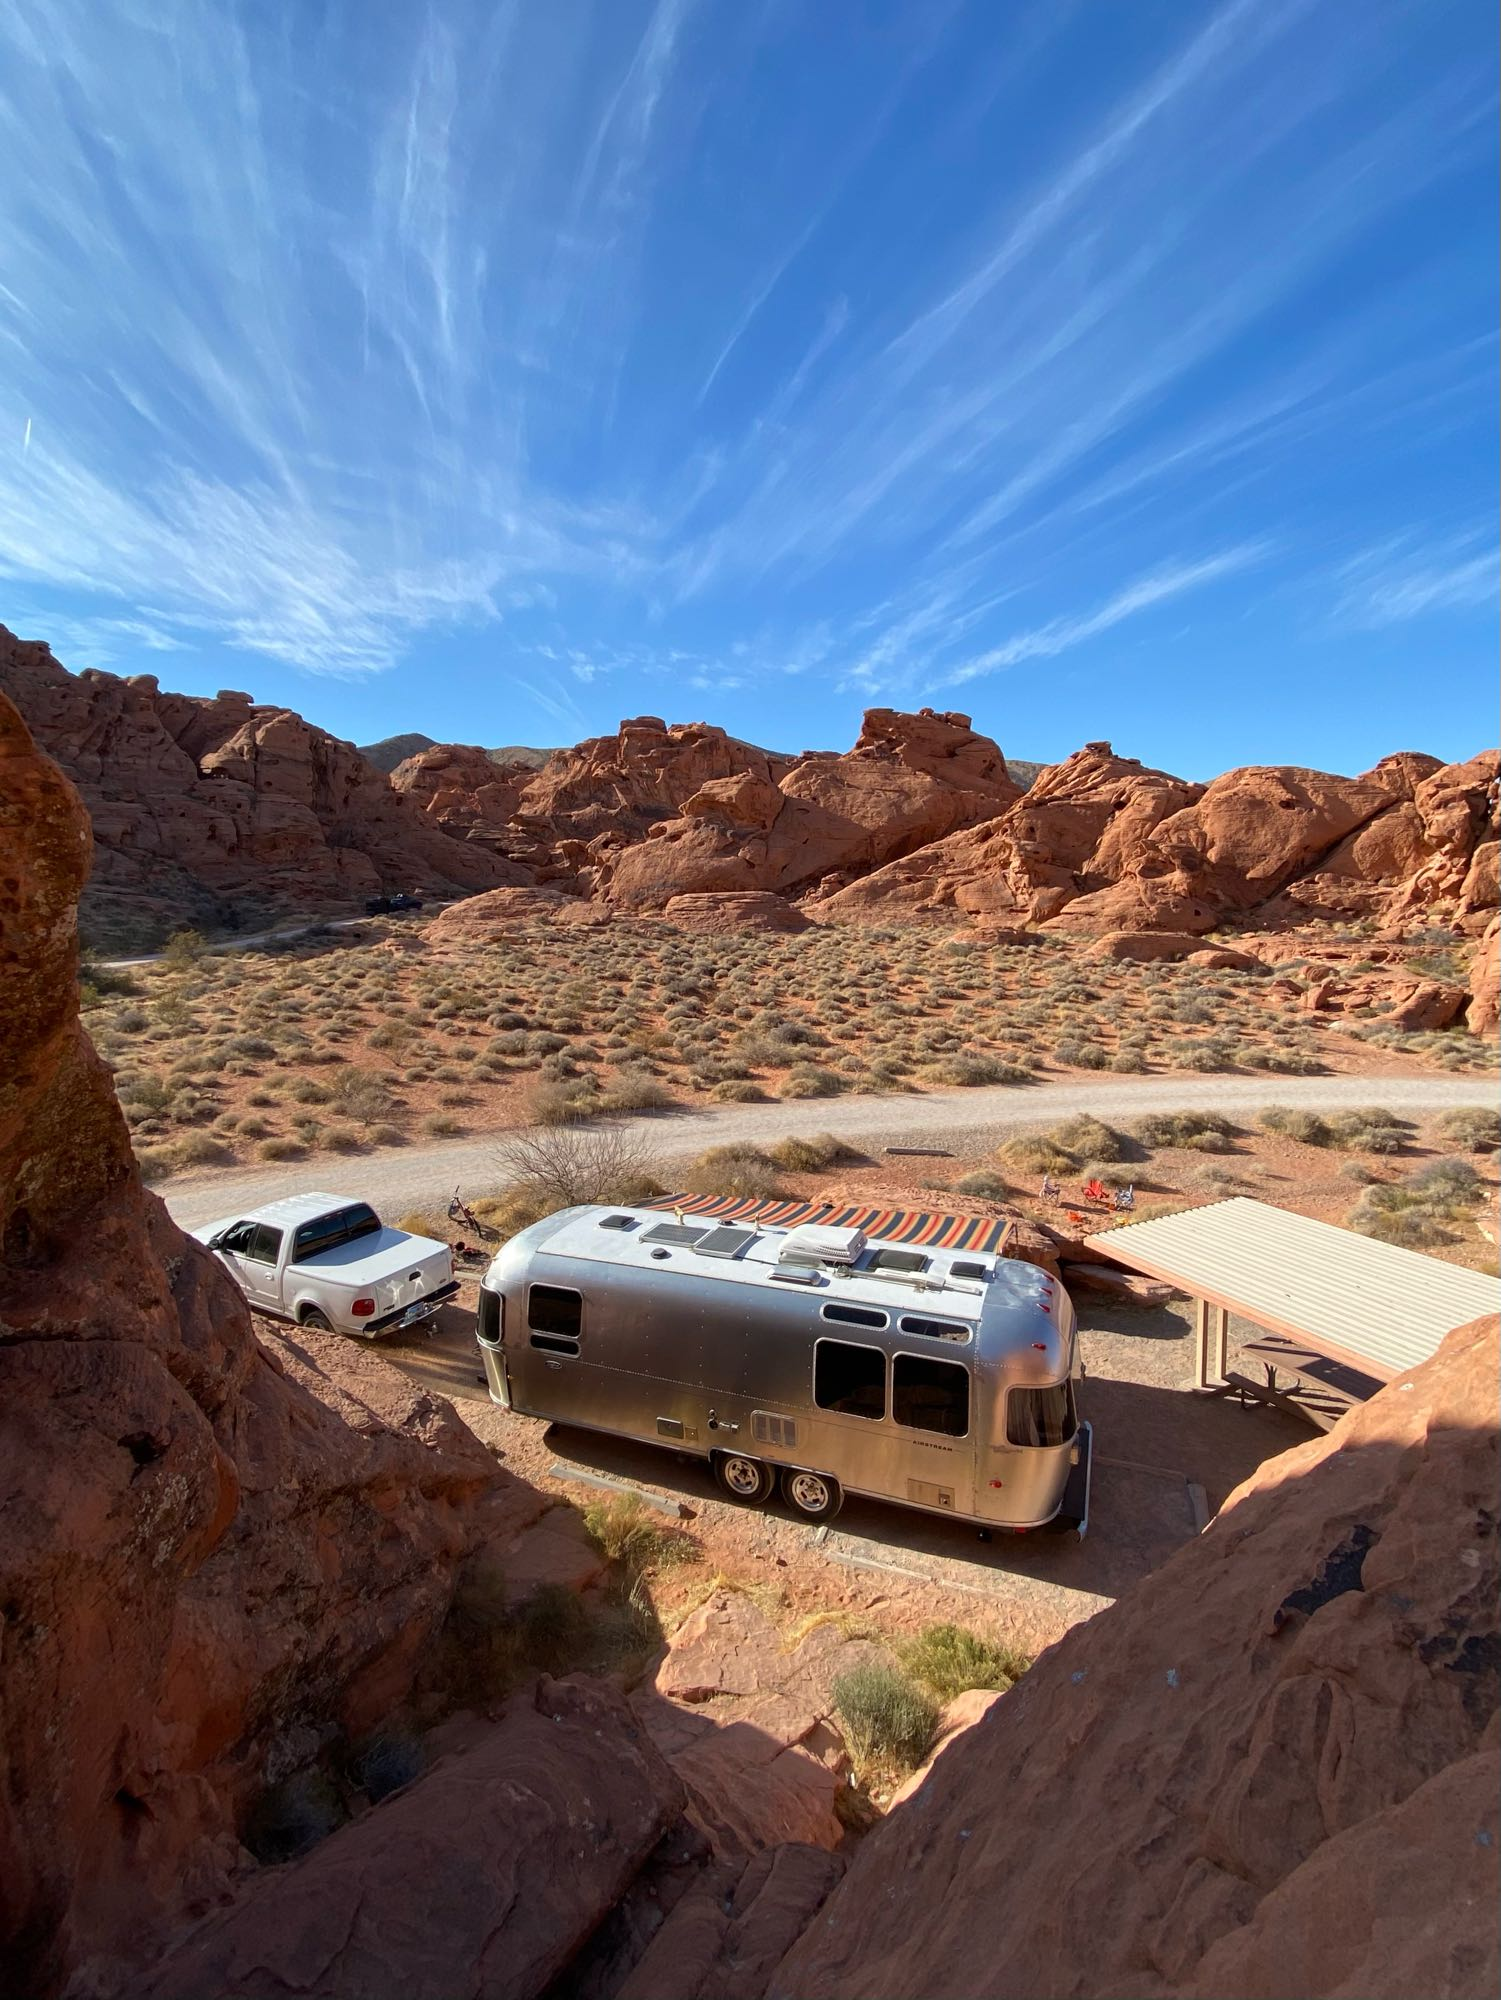 Here is the airstream parked at one of our favorite camping spots, Valley of Fire State Park (1 hour north of Las Vegas).. Airstream Safari 2007